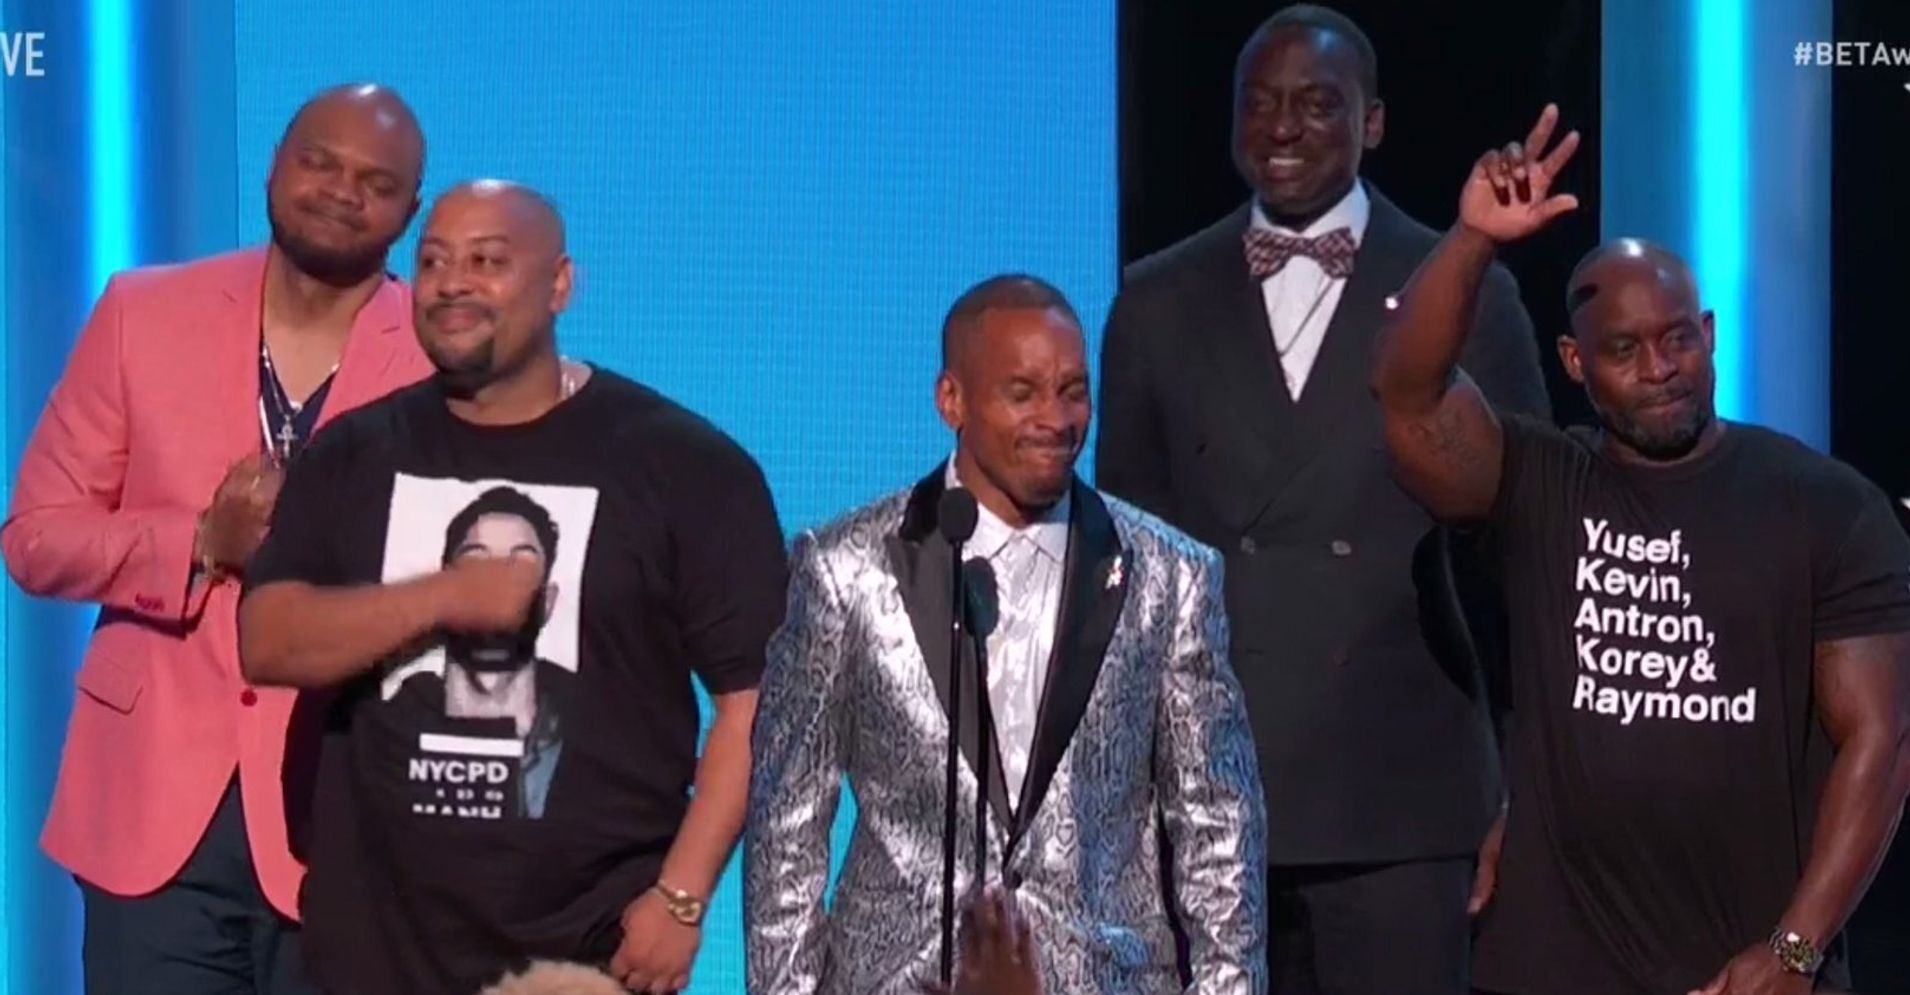 Exonerated Central Park Five Receive Standing Ovation At 2019 BET Awards